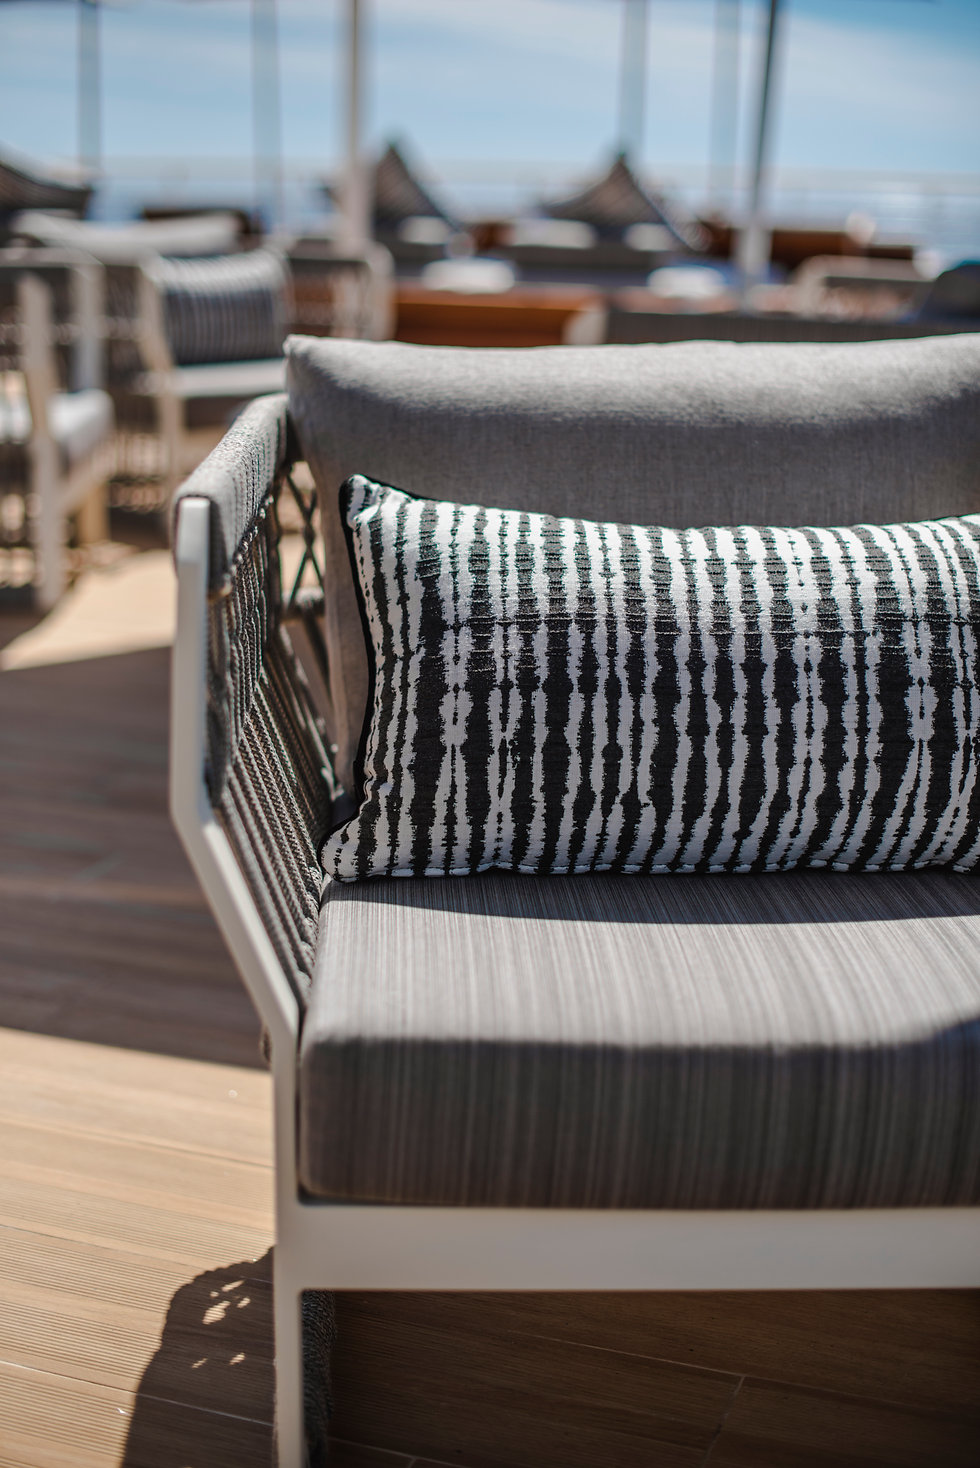 Ourdoor Cushions Manufacturer Hospitality South Africa